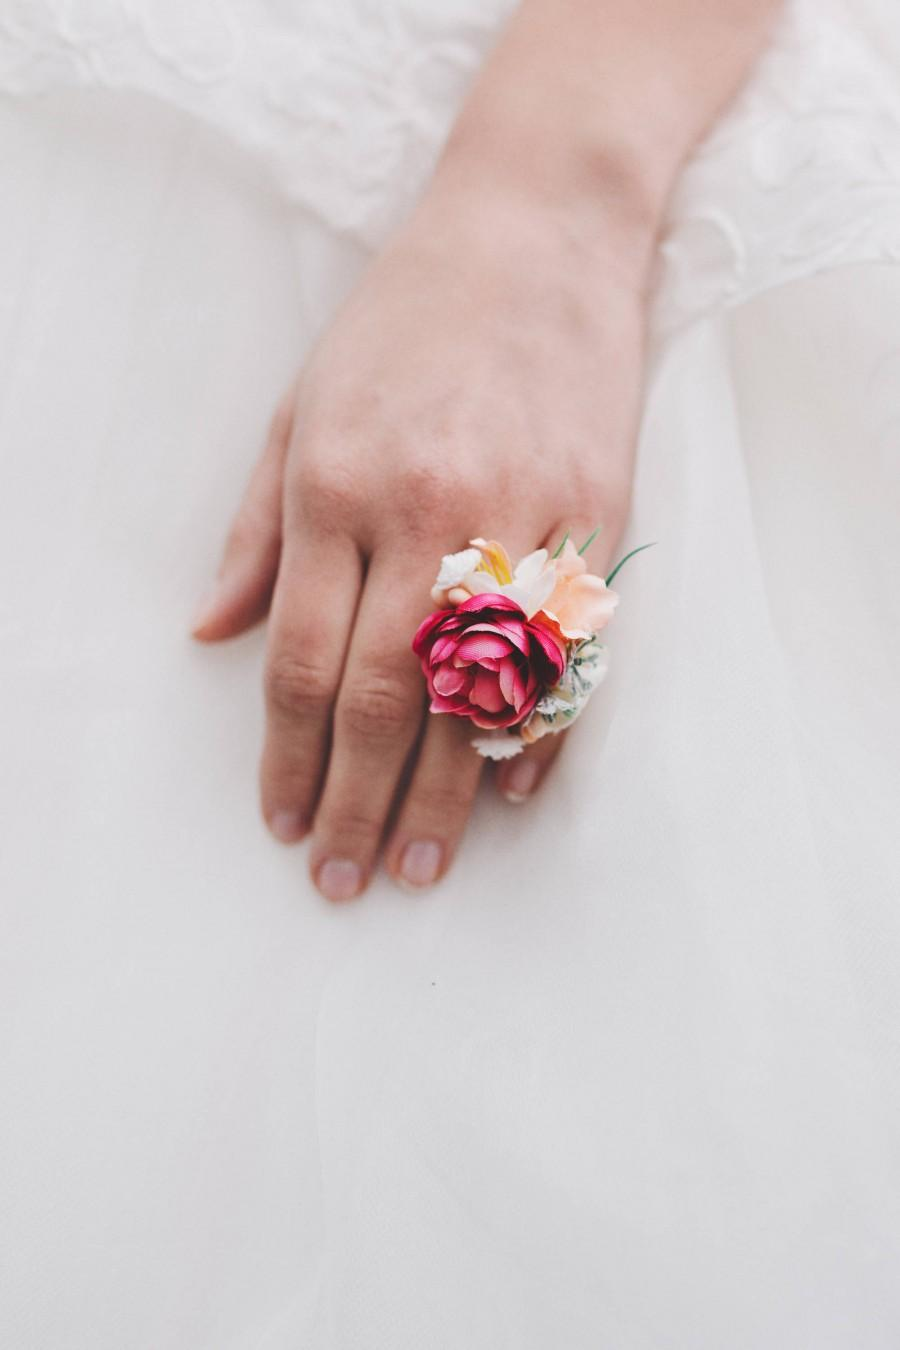 Wedding - Flower ring Floral ring Handmade jewelry Wedding floral accessories Ring